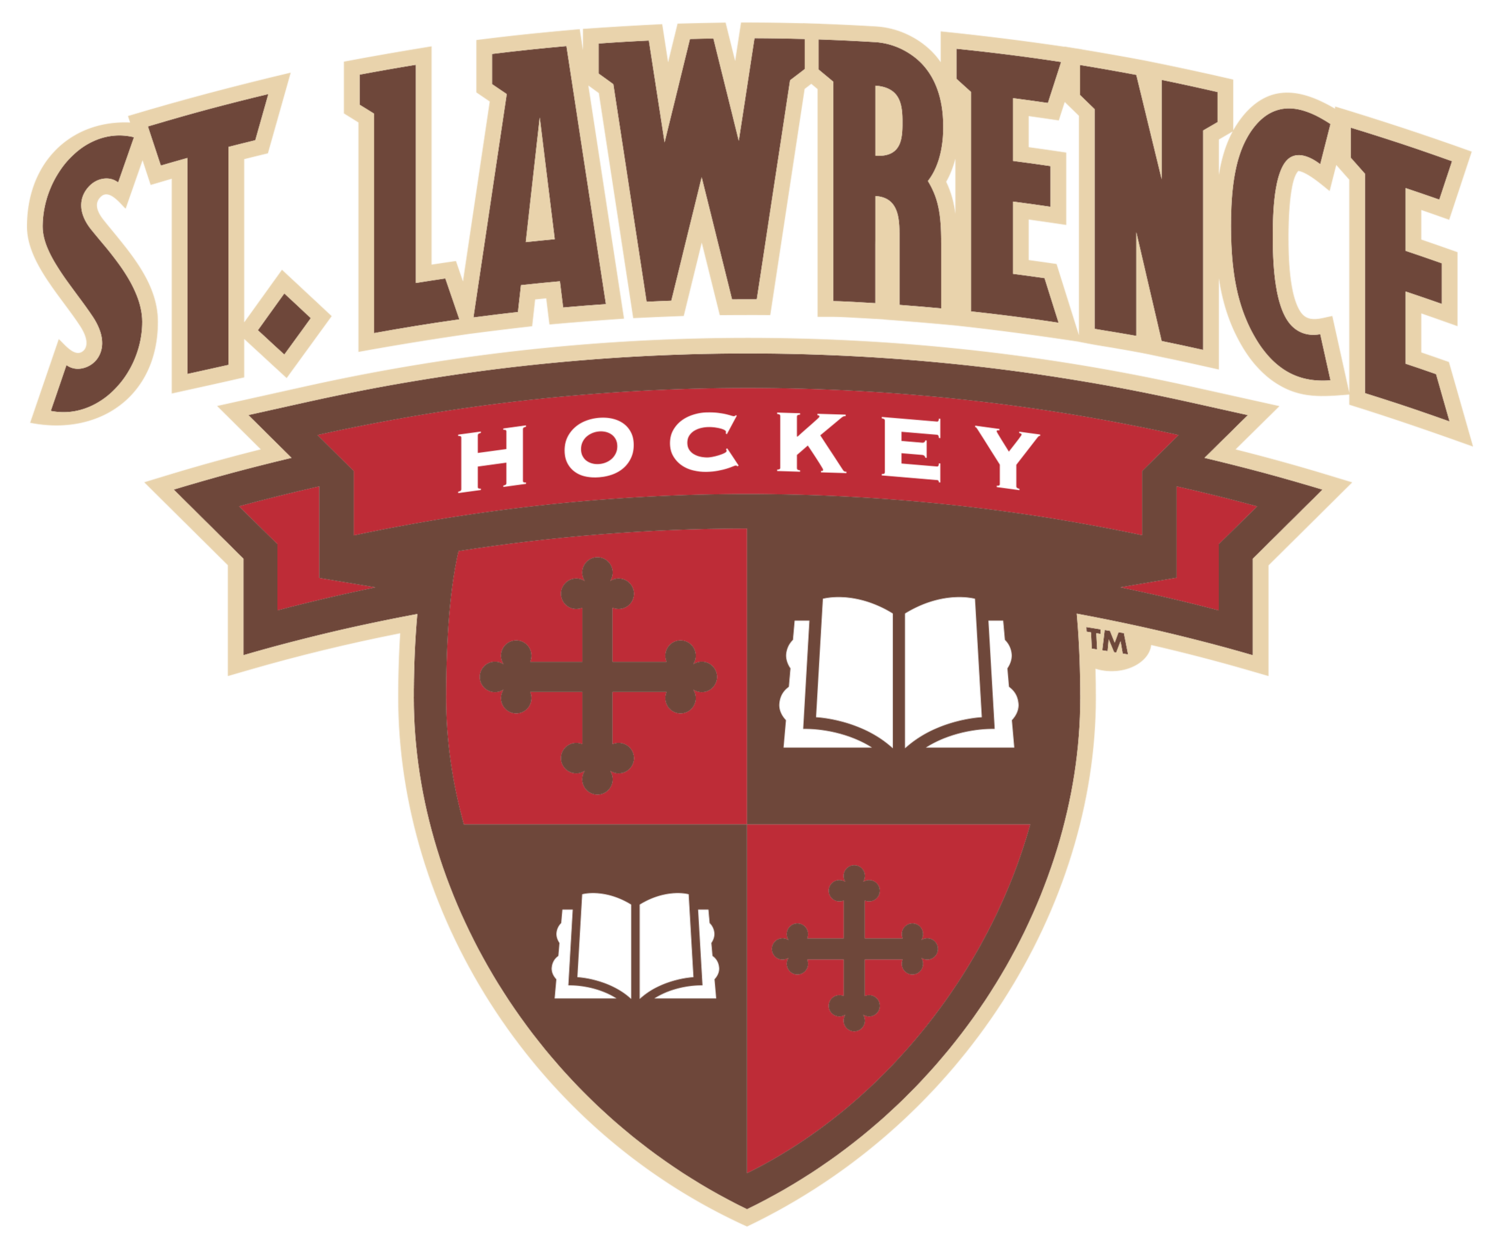 St. Lawrence Hockey Alumni Association